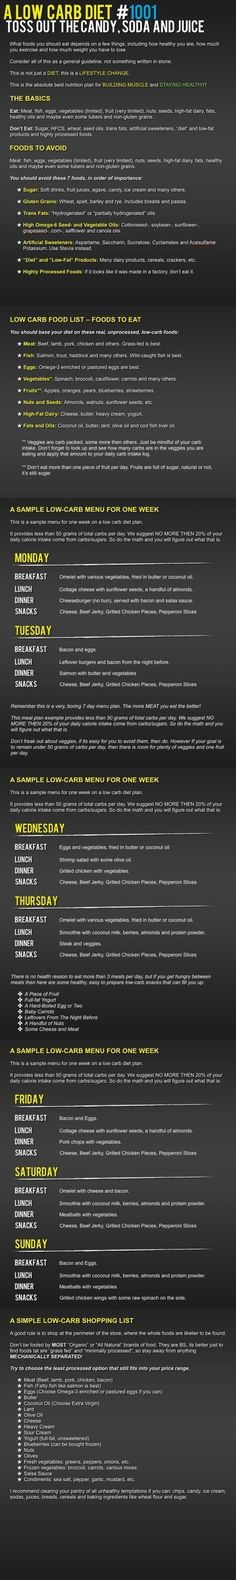 To Find The Best Low Carb Diet Plan- A Complete Guideline Here is a great graphic on low carb diet. it includes a food list and simple meal plan.Here is a great graphic on low carb diet. it includes a food list and simple meal plan. High Carb Foods, Low Carb Diet, Ab Diet, Low Carb Meal Plan, Lchf Diet, Dukan Diet, Diet Foods, Calorie Diet, Carb Cycling Diet